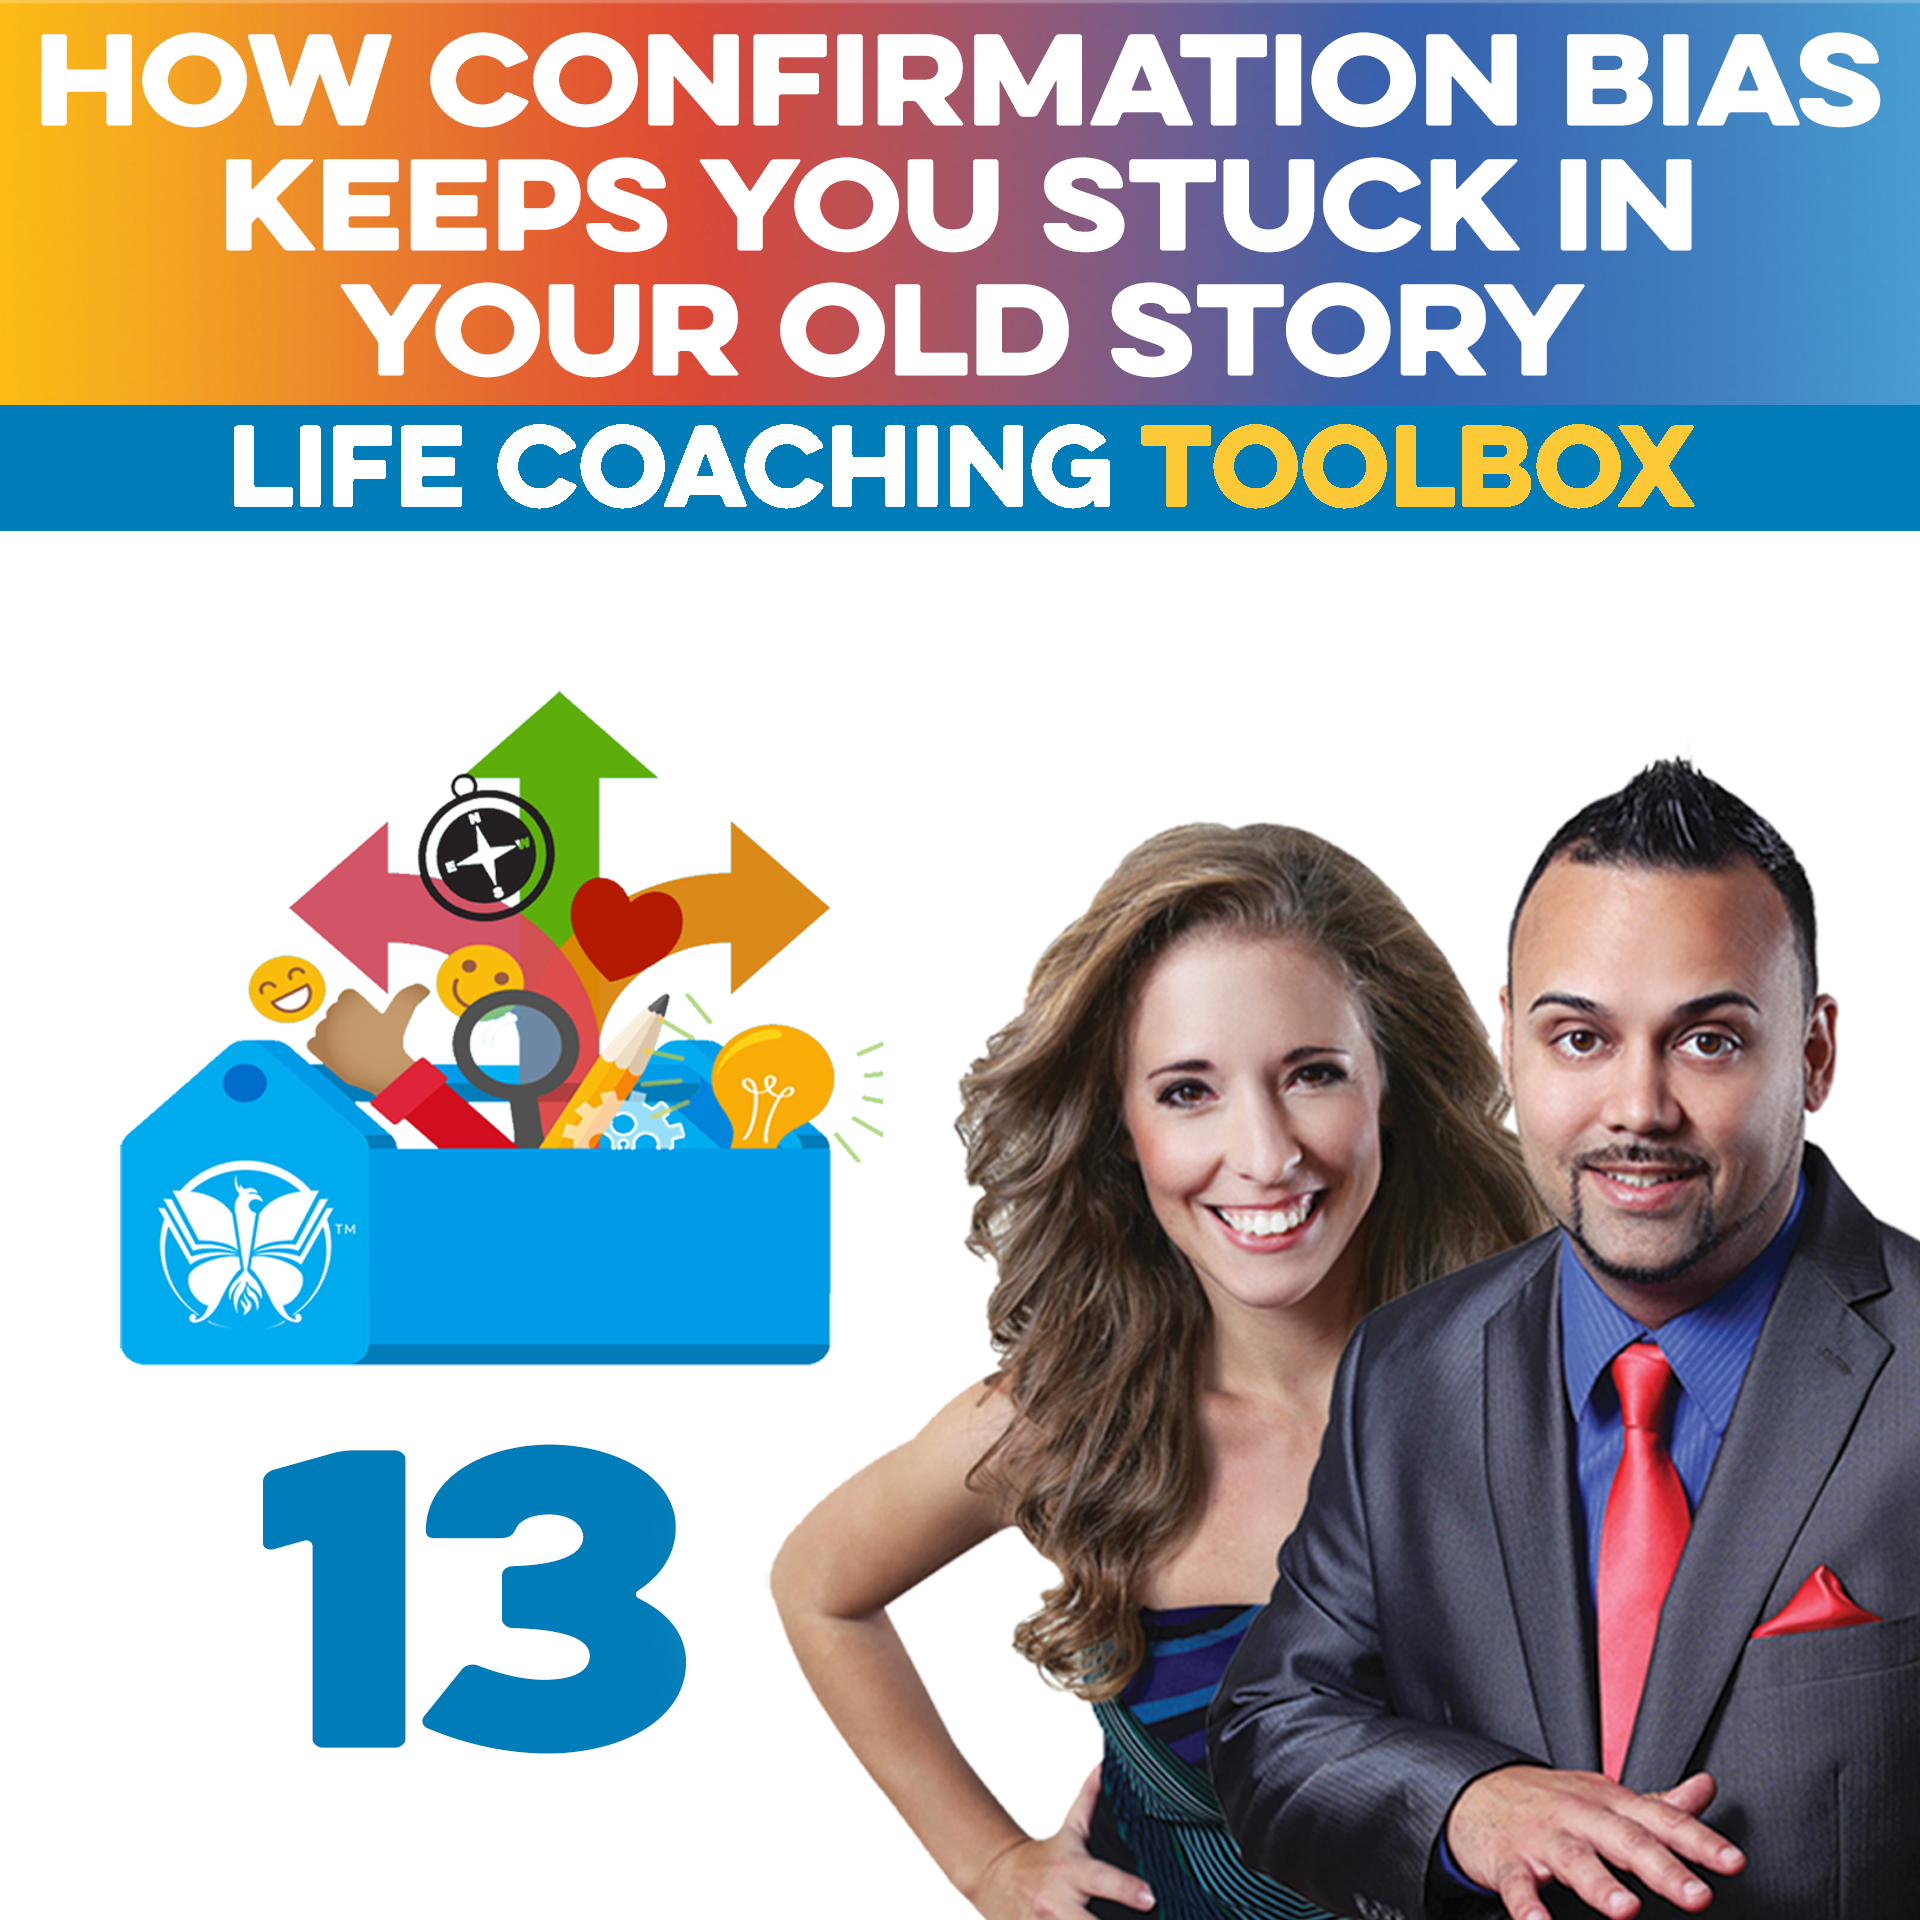 How Confirmation Bias Keeps You Stuck In Your Old Story